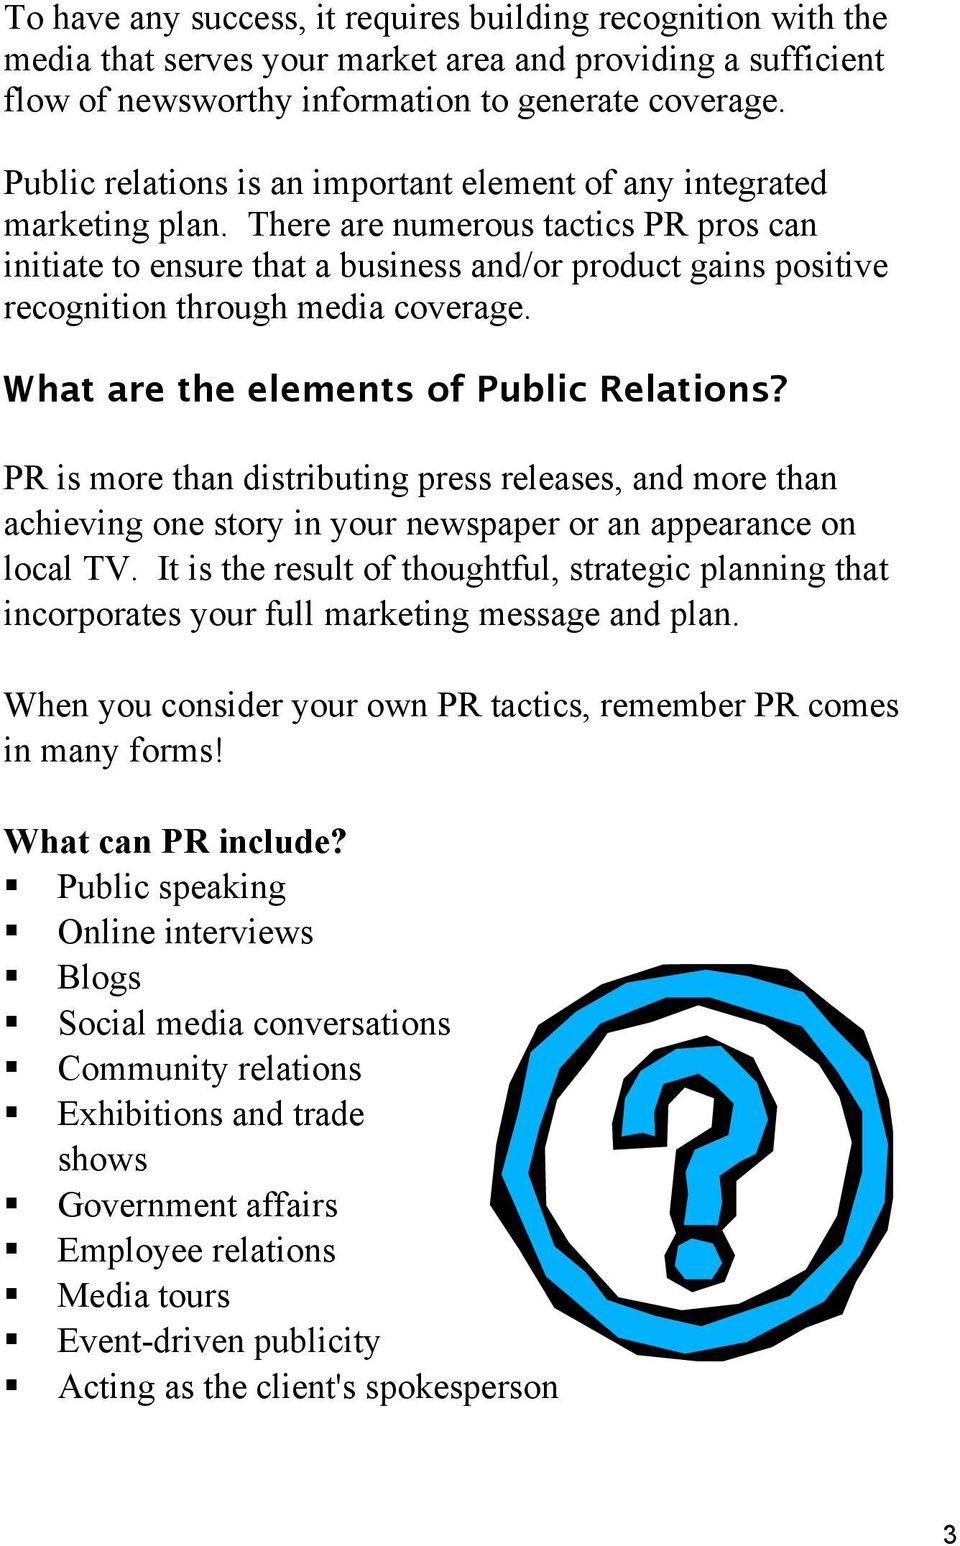 There are numerous tactics PR pros can initiate to ensure that a business and/or product gains positive recognition through media coverage. What are the elements of Public Relations?